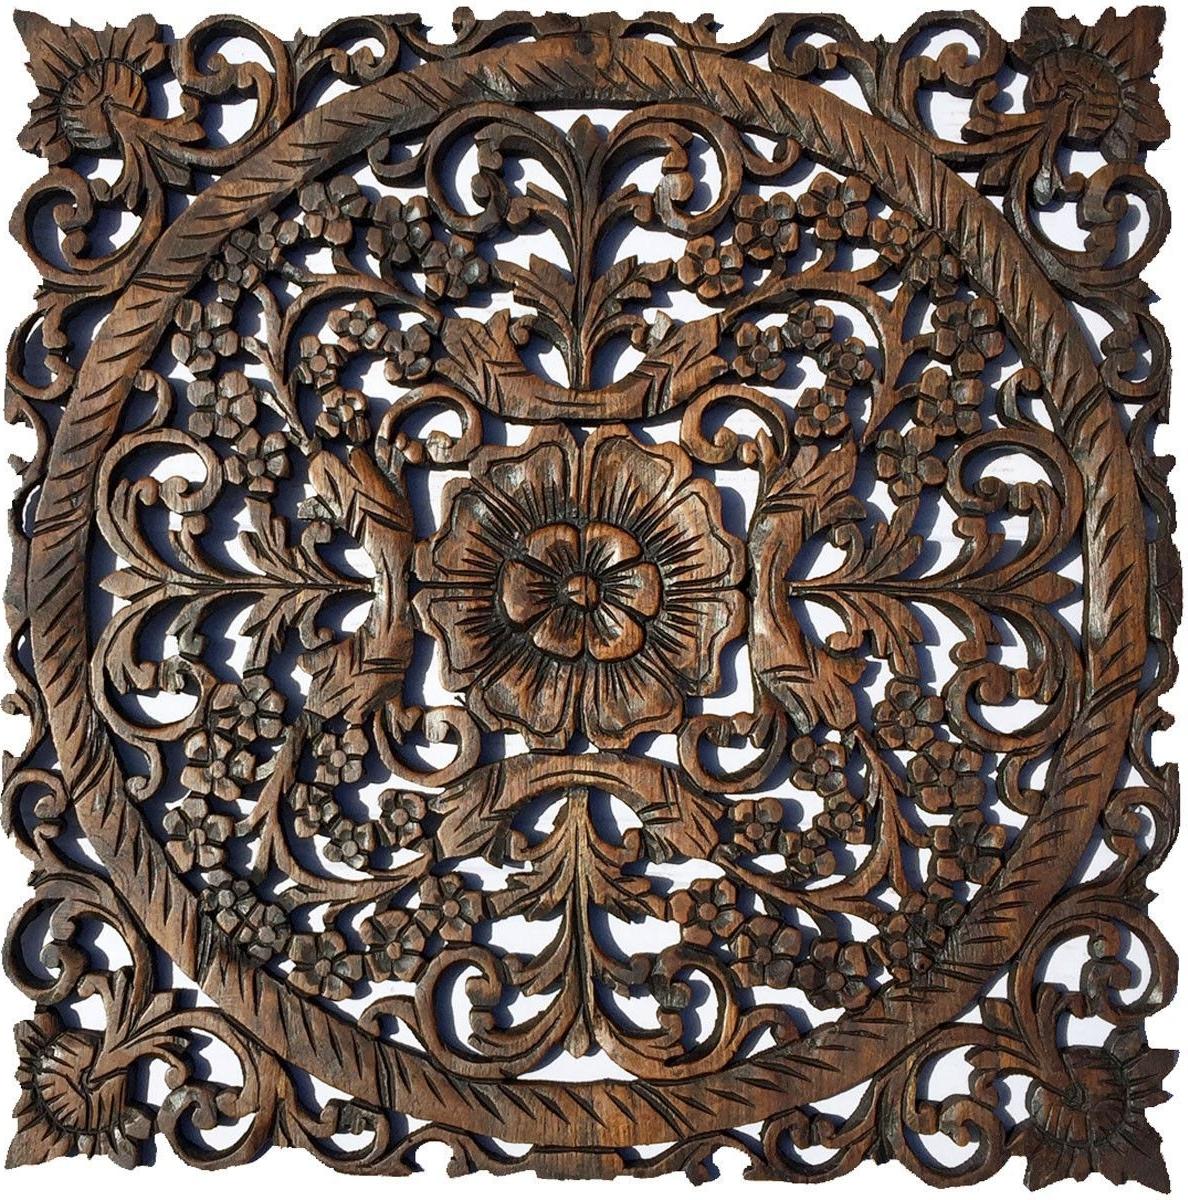 Carved Wood Wall Art Pertaining To Well Liked Oriental Carved Floral Wall Decor. Unique Asian Wood Wall Art (View 7 of 15)